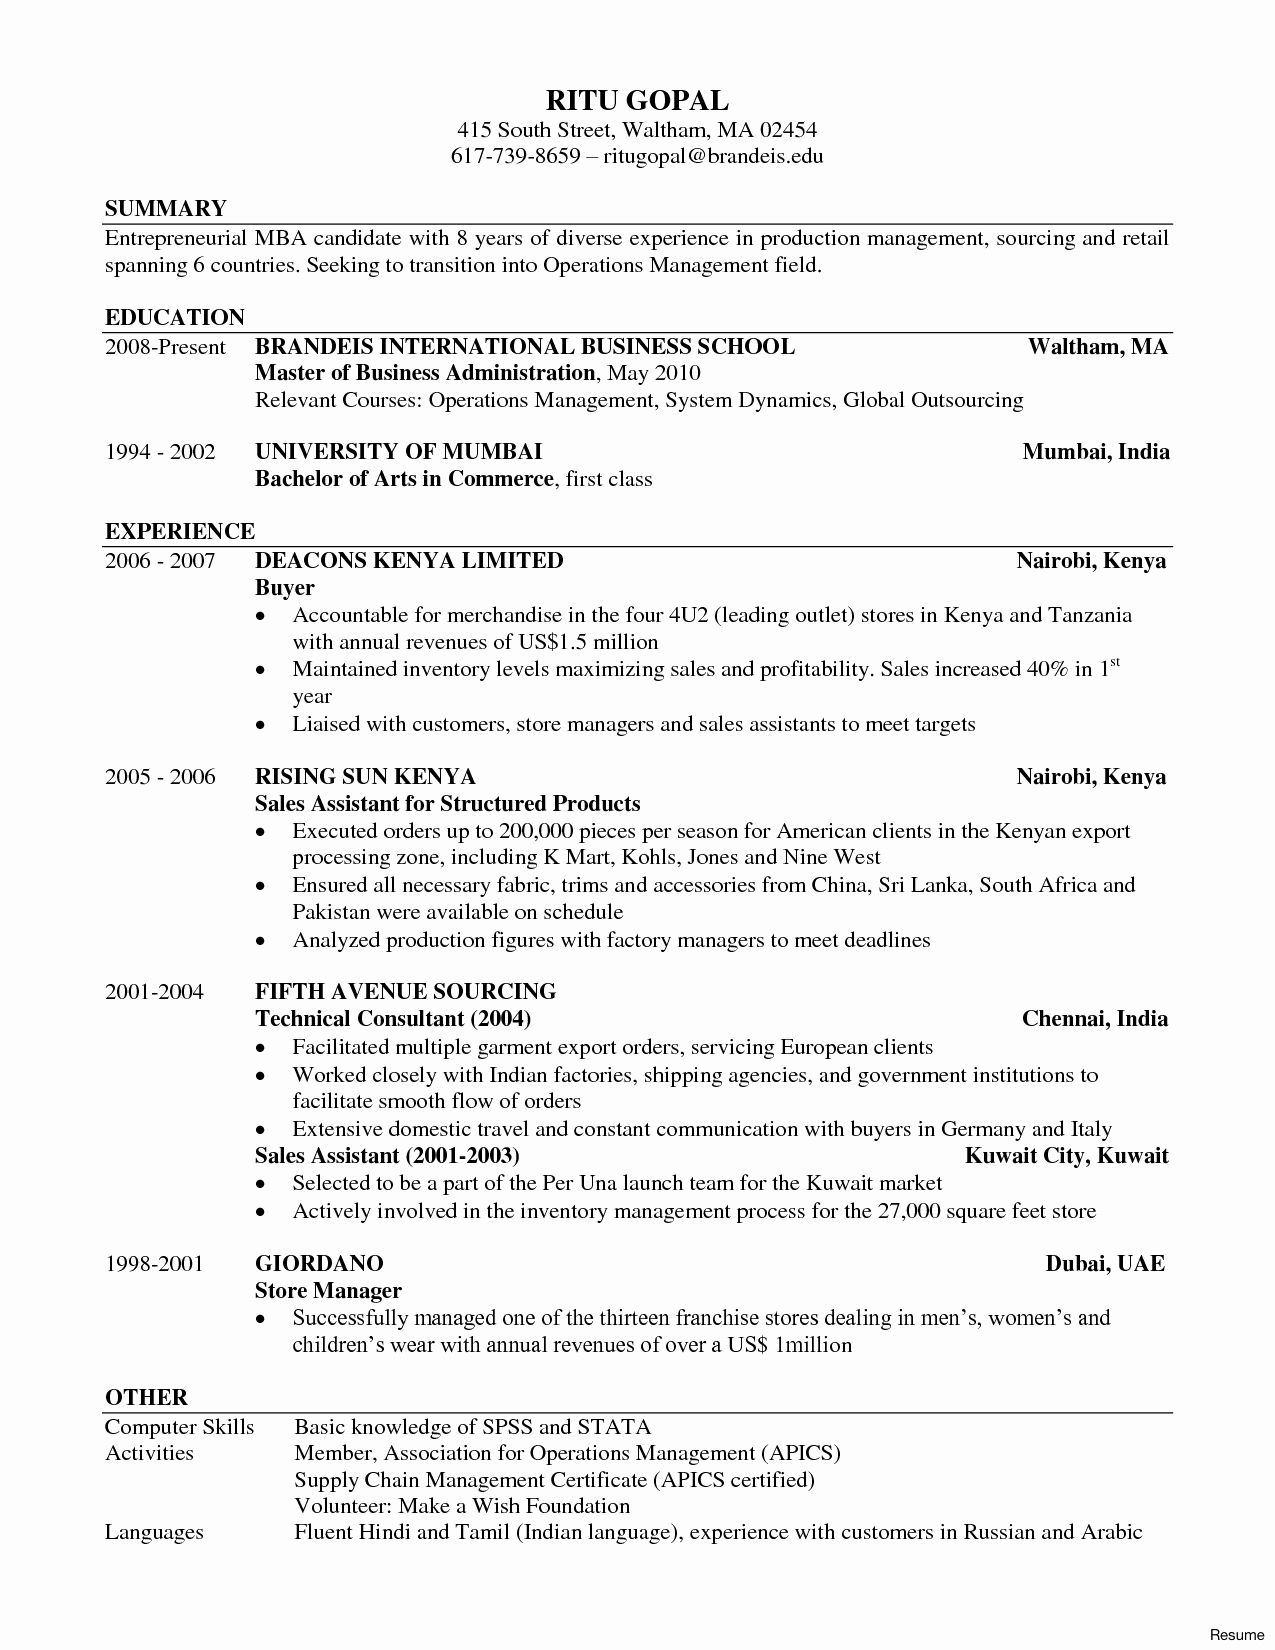 cv template harvard resume format business examples army team leader of core competencies Resume Business Resume Template